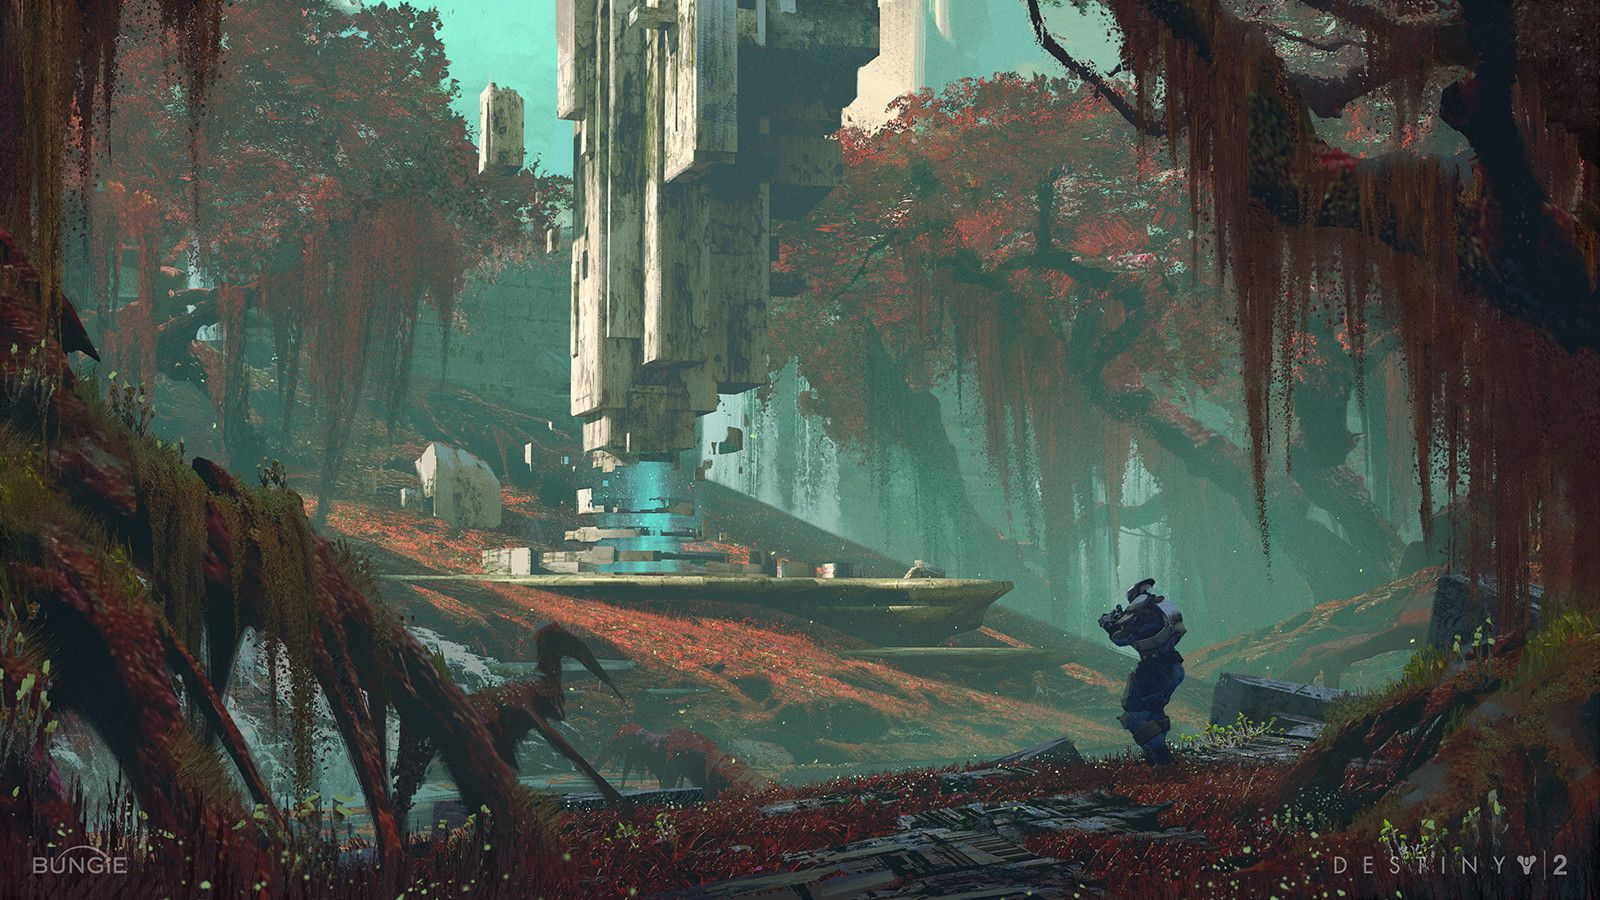 Destiny 2 Concept Art By Sung Choi Concept Art World In 2020 Concept Art Gallery Game Concept Art Concept Art World